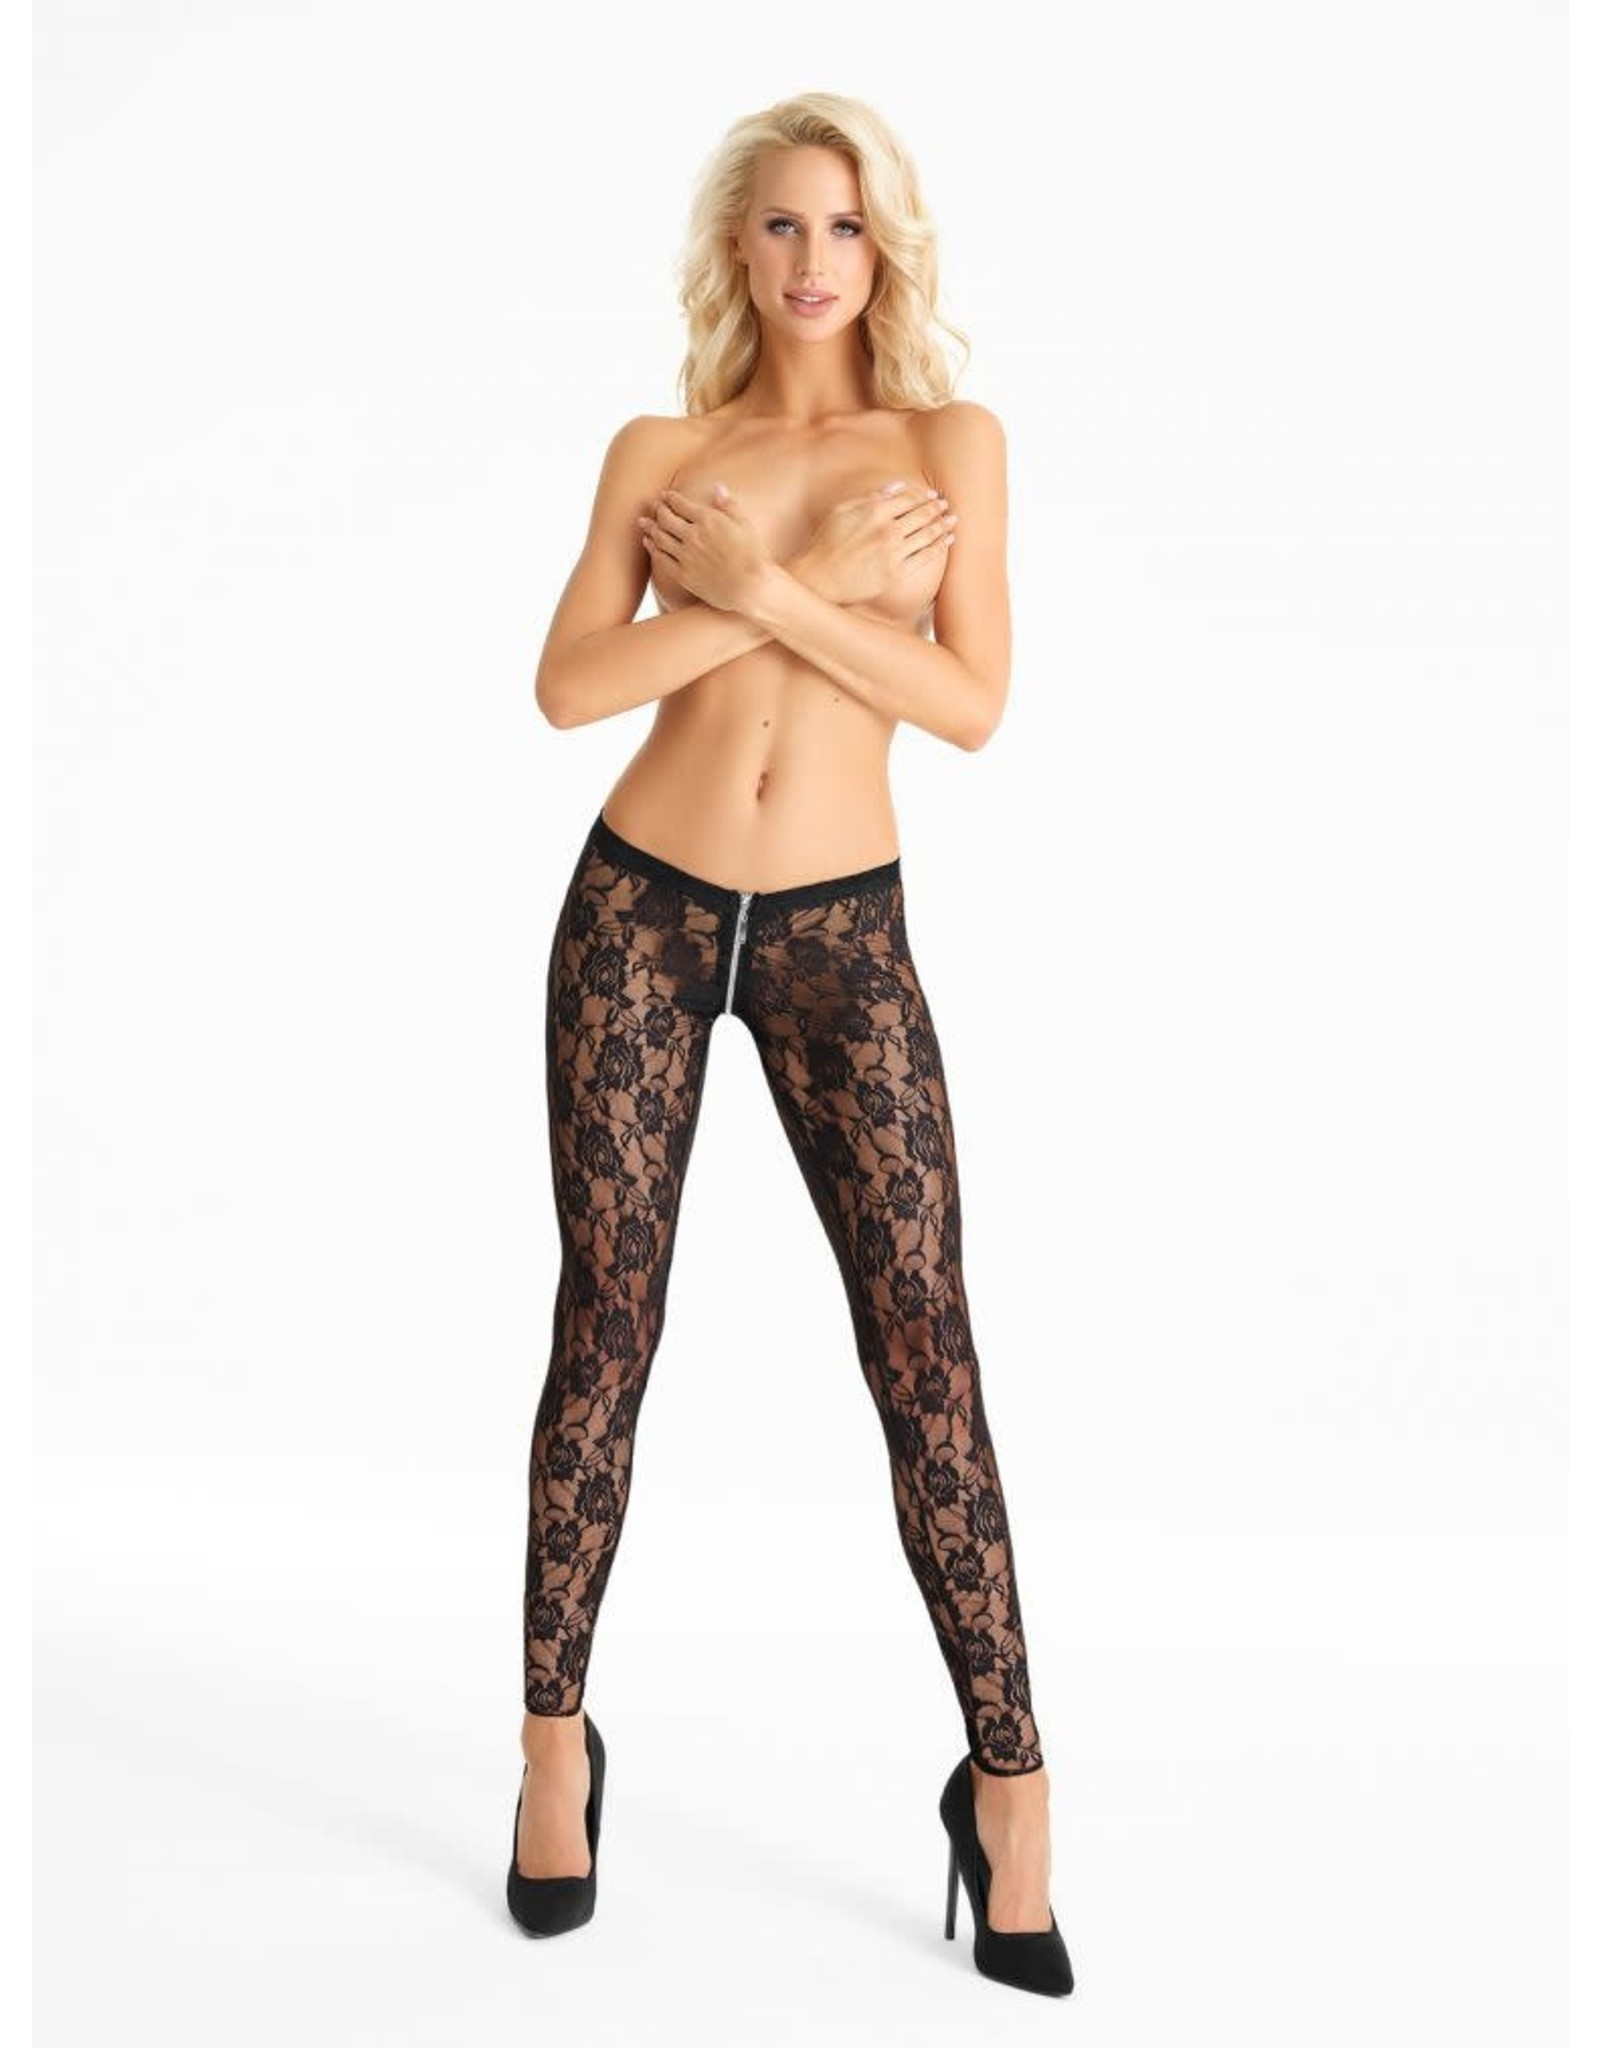 7 HEAVEN - SUPER SEXY LACE LEGGINGS WITH ZIPPER ACROSS THE CROTCH - SMALL